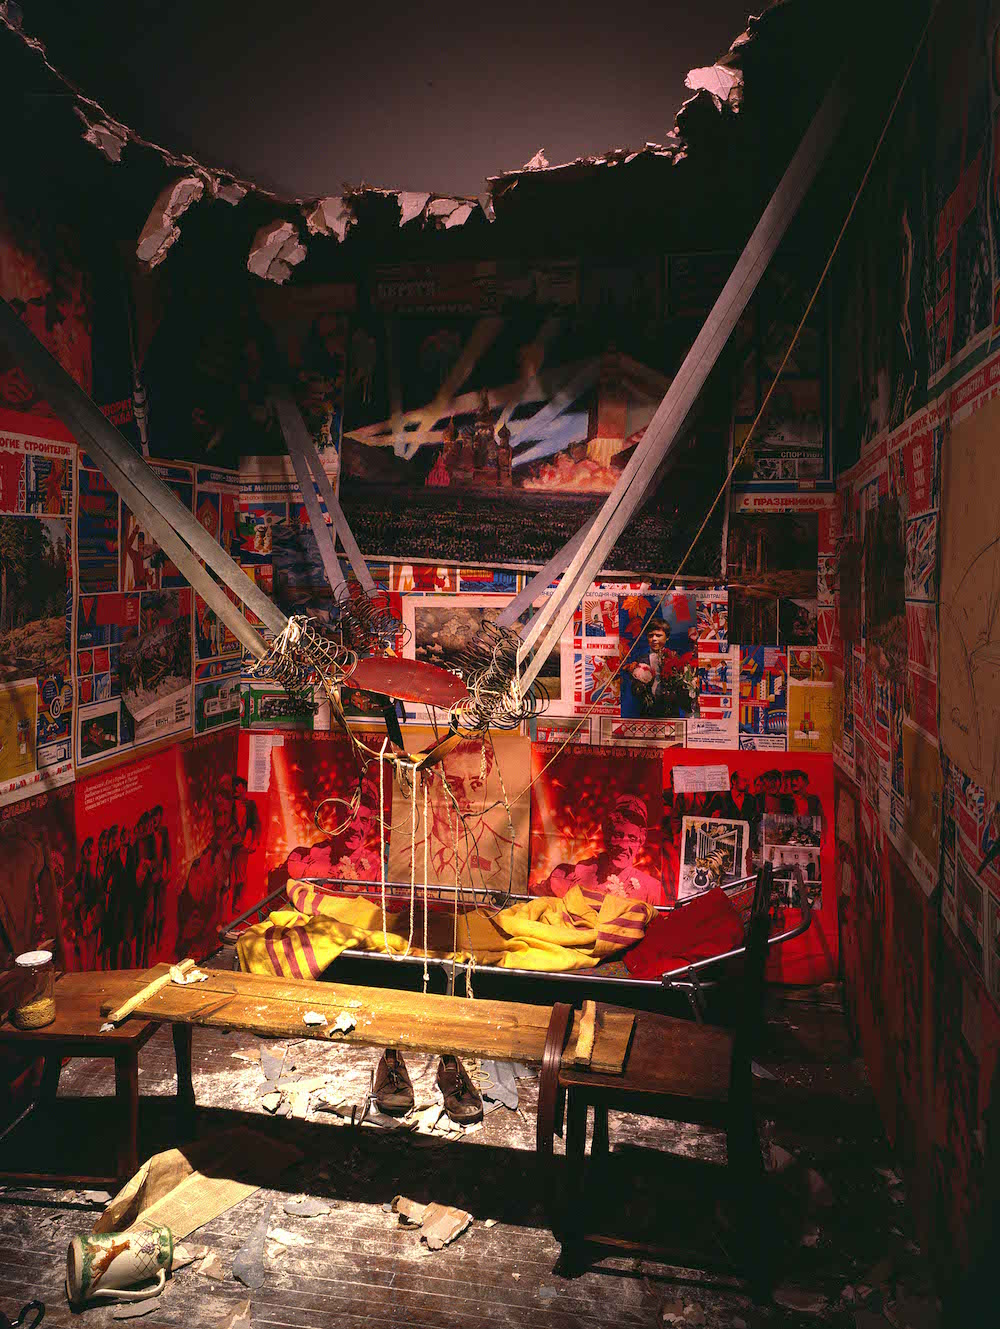 <em>The Man Who Flew Into Space From His Apartment</em> (1985) by Ilya Kabakov, on display at Tate Modern